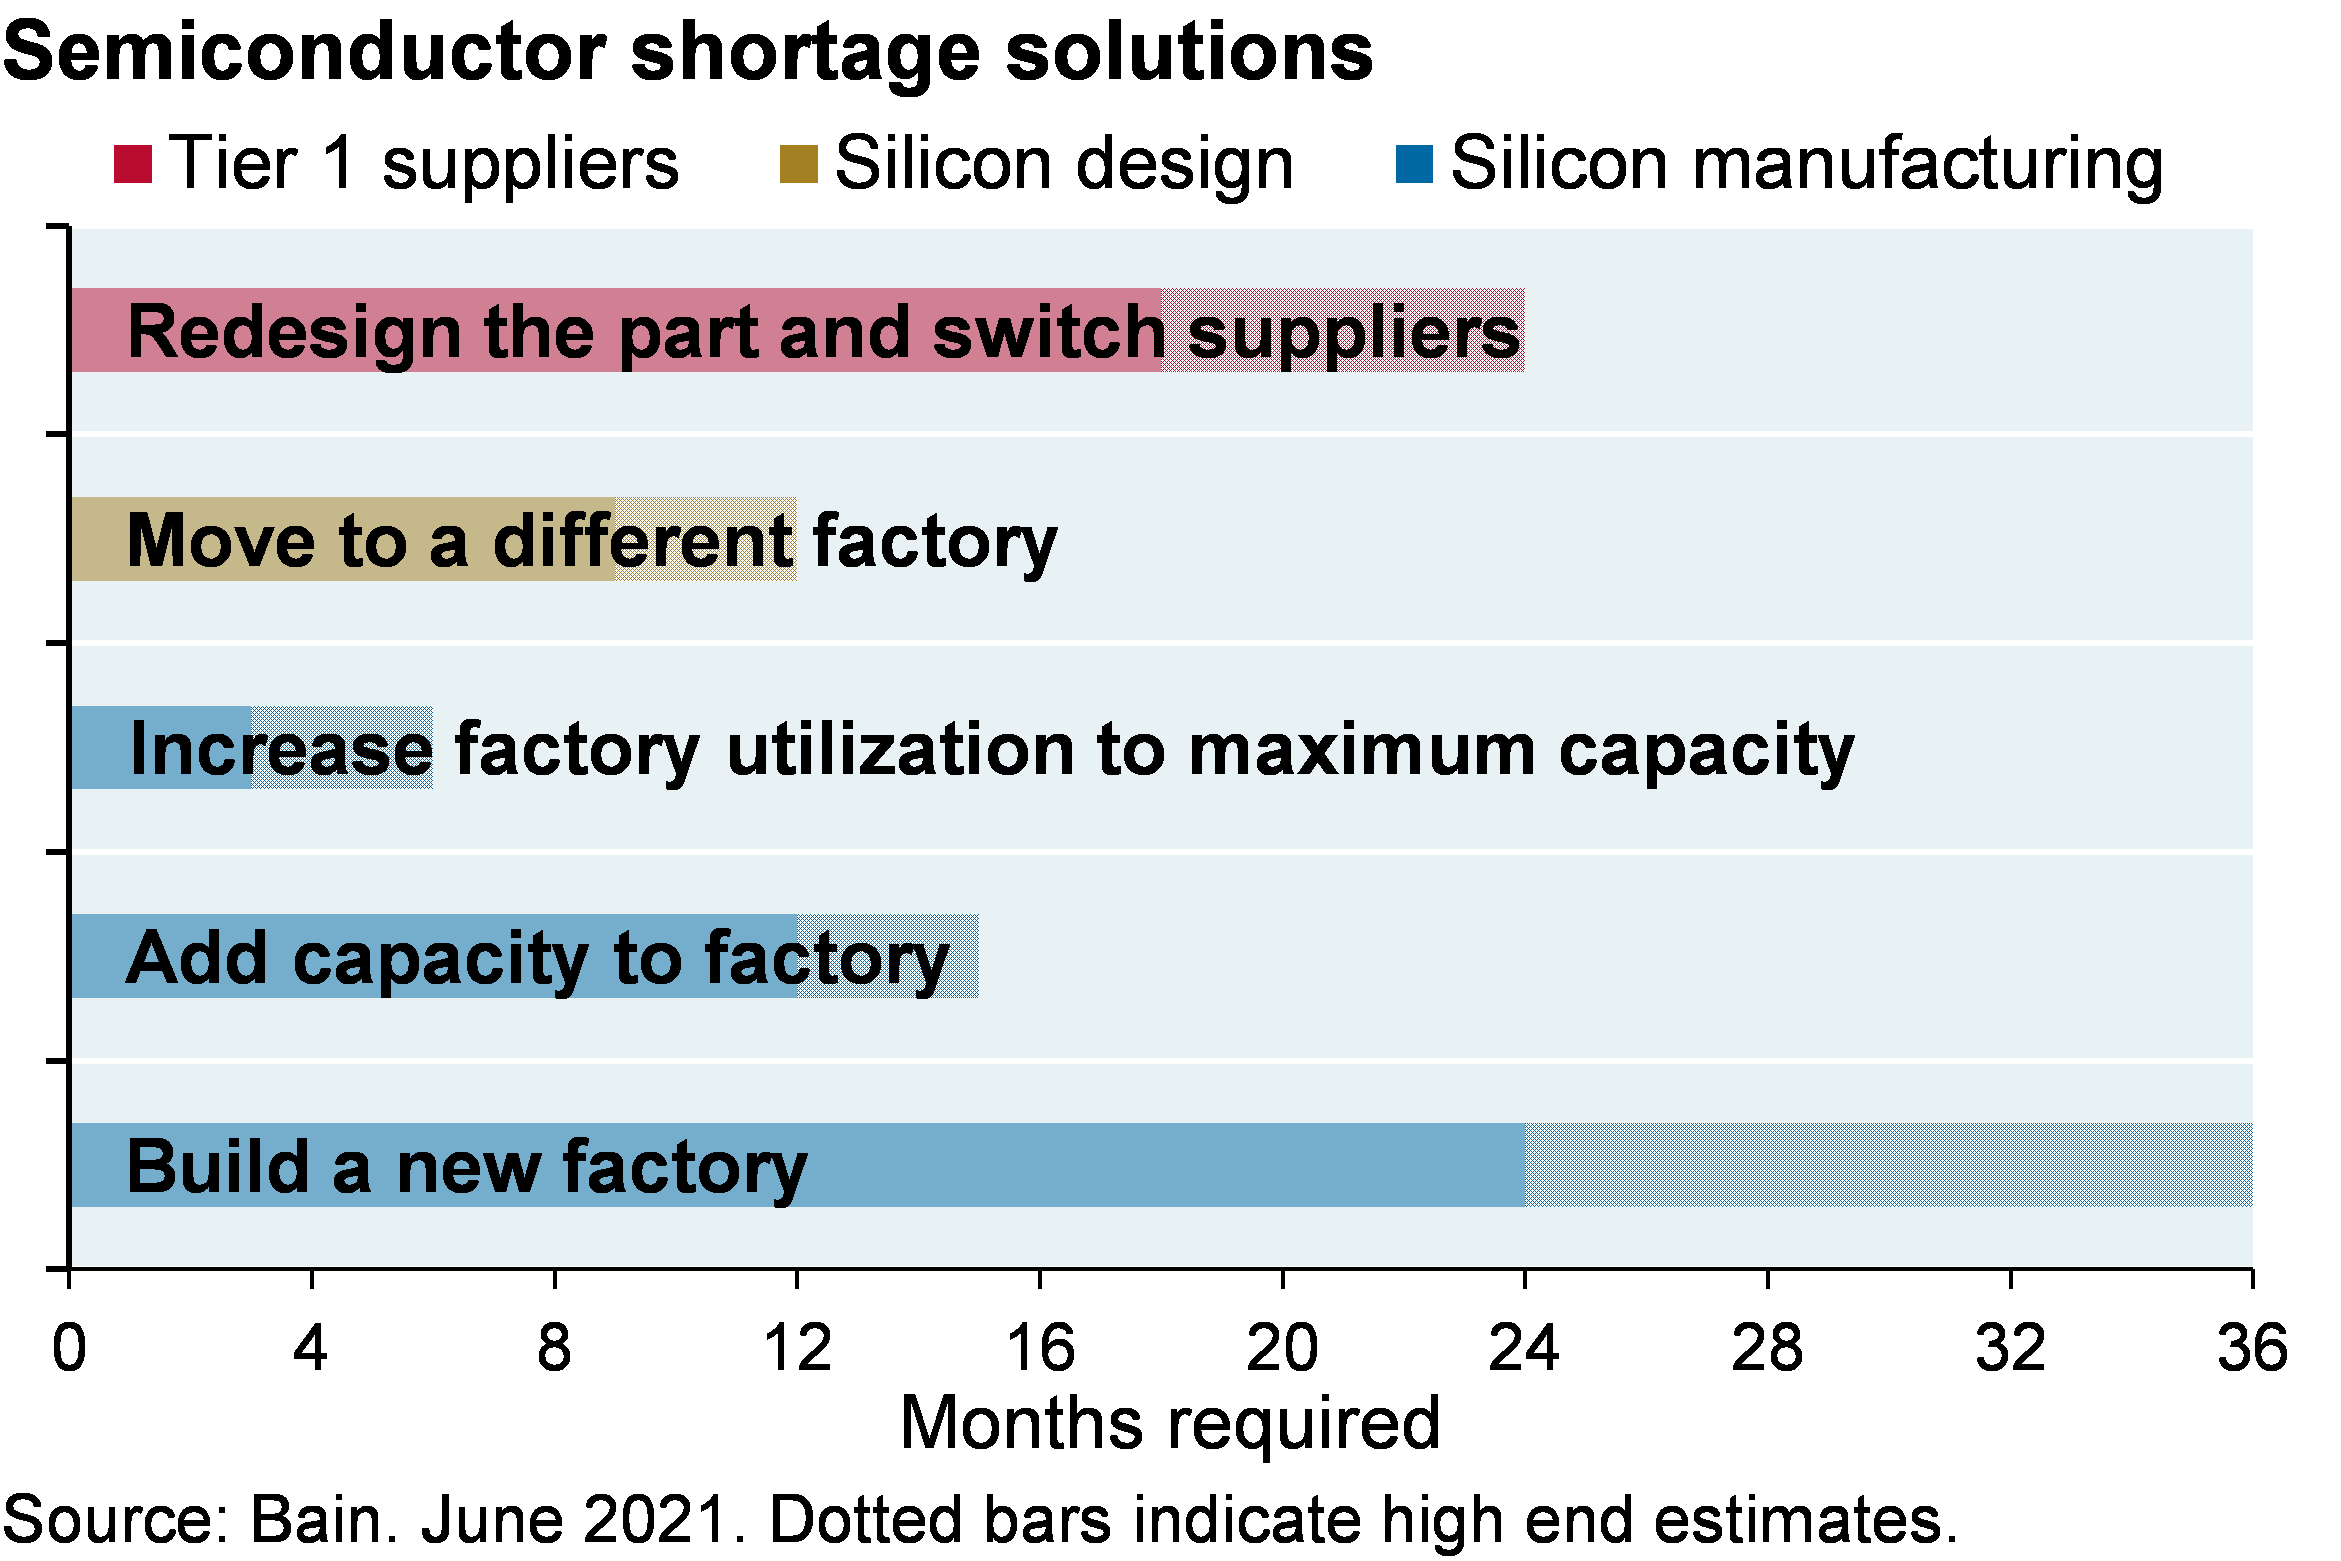 Bar chart shows the low and high range of months required to implement various solutions to the chip shortage problem. Tier 1 supplies can redesign parts and switch suppliers, taking 18-24 months. Silicon designers can move to a different factory, which would take about 9 to 12 months. Silicon manufacturers can either increase factory utilization (3-6 months), add factory capacity (12-15 months), or build a new factory (24-36 months).